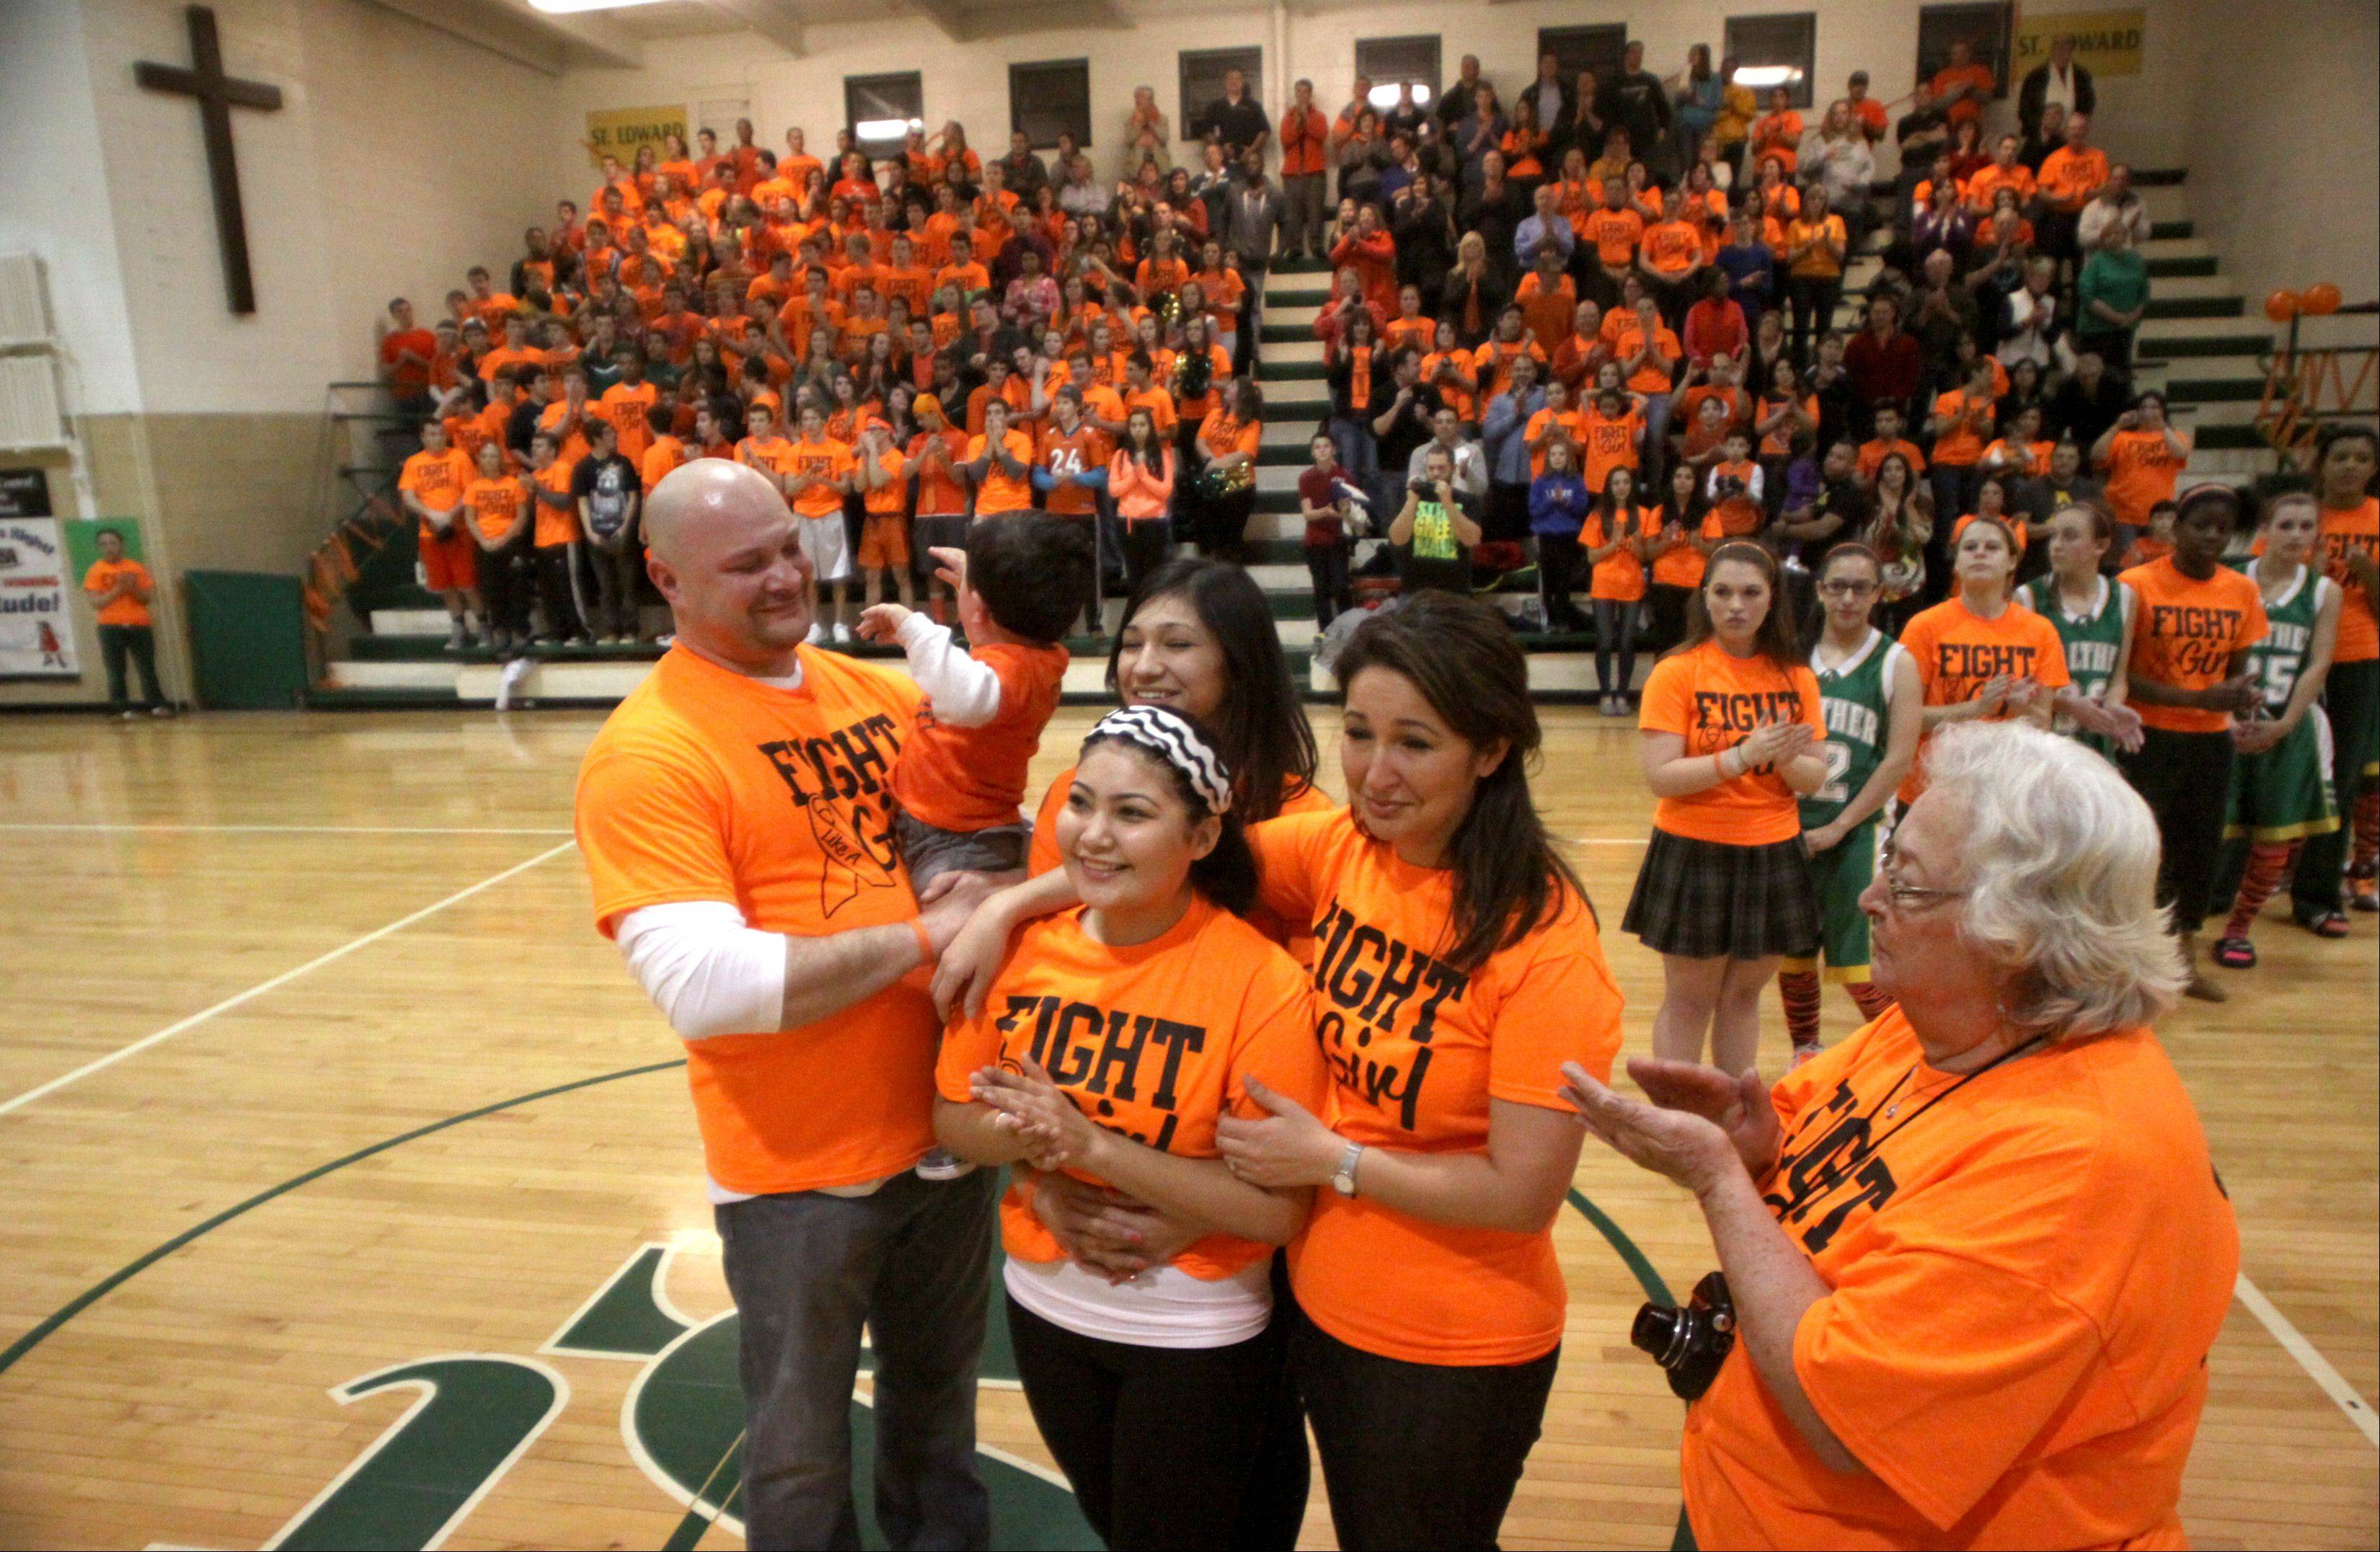 St. Edward sophomore basketball player Jordan Paz was honored before a varsity contest against Walther Lutheran at Elgin on Thursday night. Paz is undergoing treatment for Leukemia, and school personnel arranged an �Orange Out Night� to offer support. Fans donned orange shirts, and team members from both sides formed a receiving line for Paz and her family to enter center court amid cheers and a standing ovation.